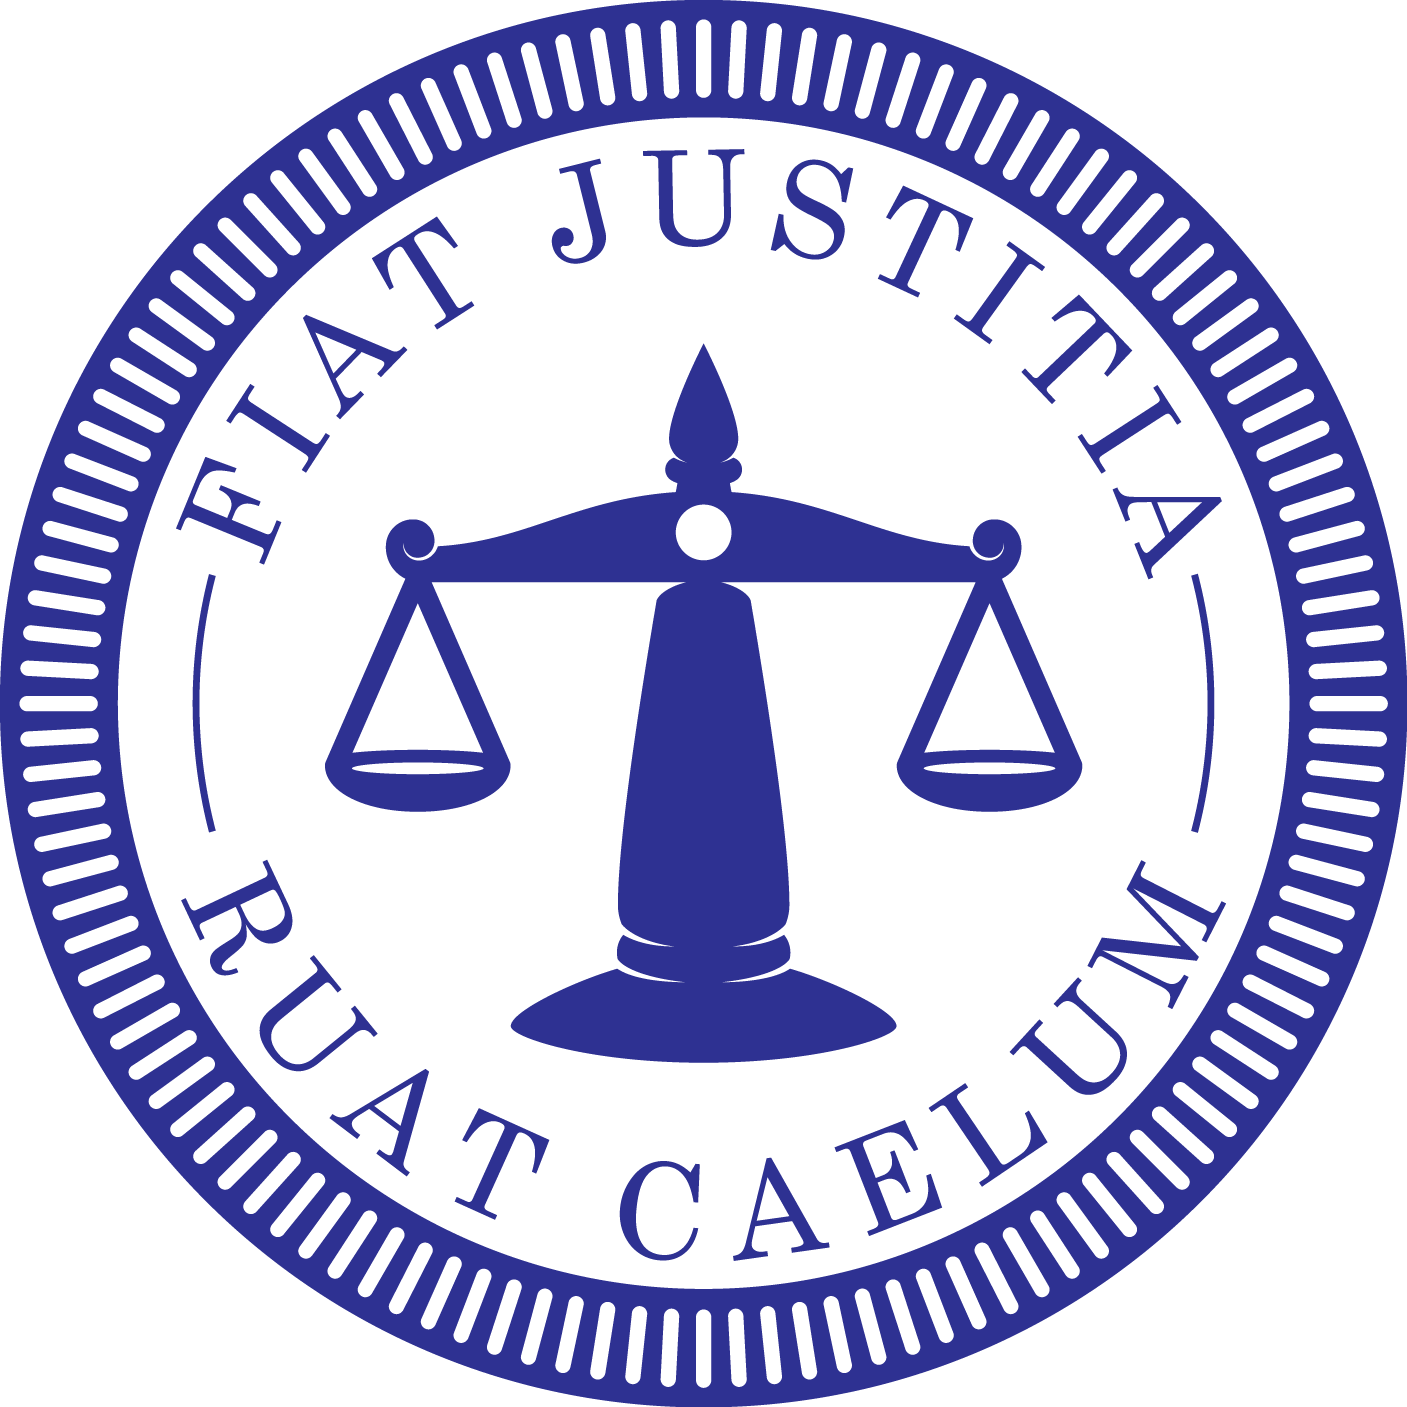 The Law Offices of Justinian C. Lane, Esq. - PLLC